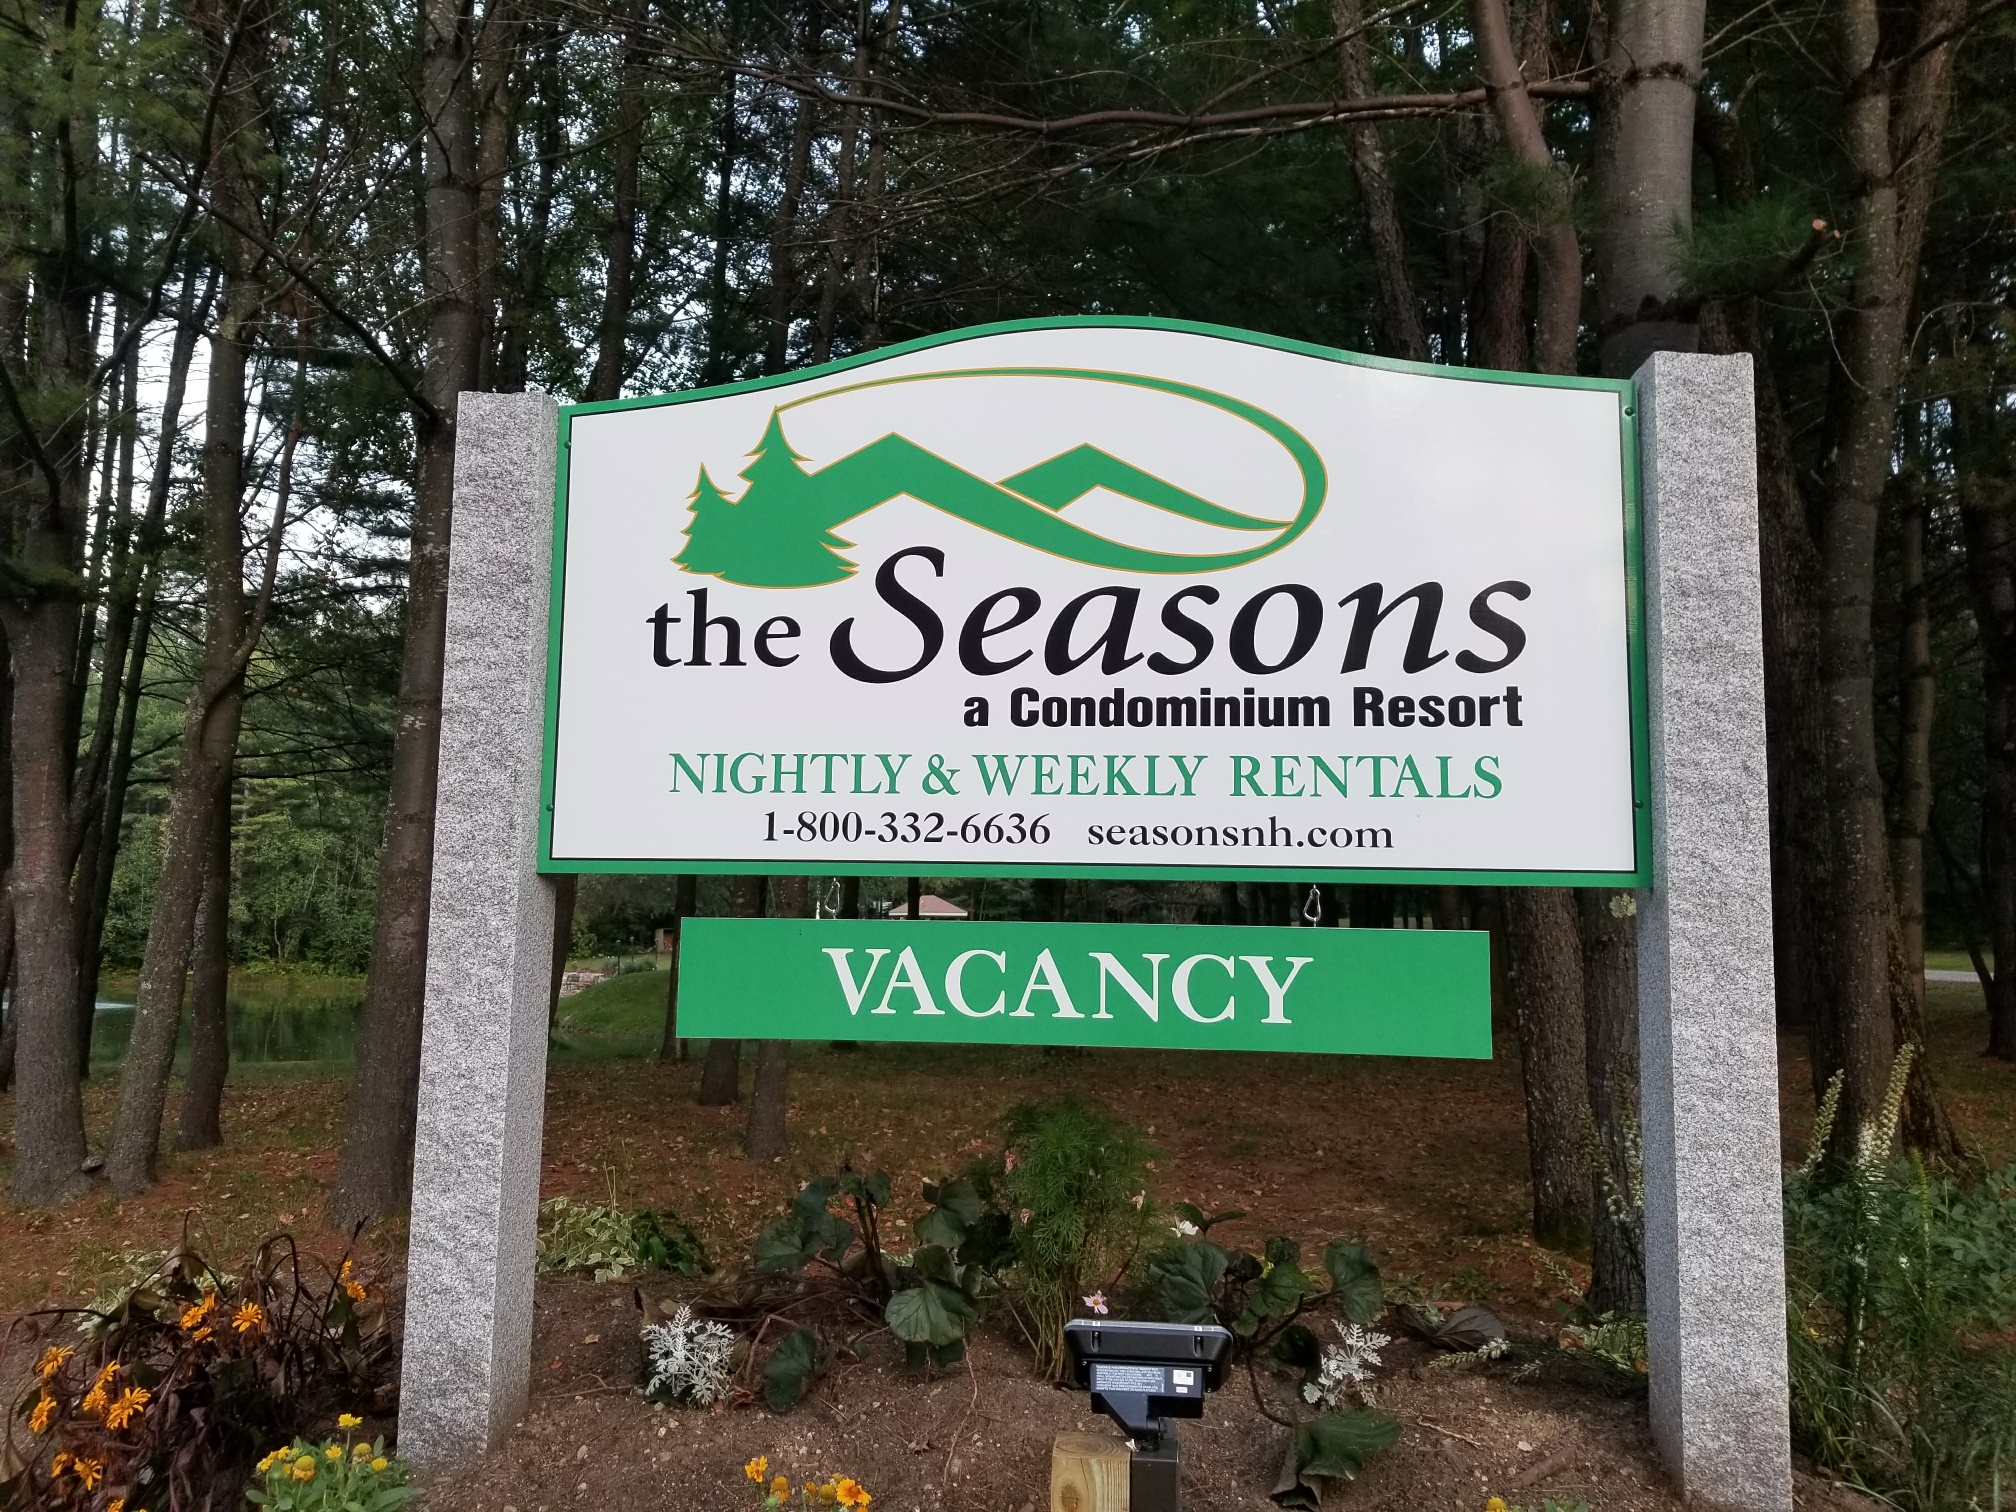 The seasons photo